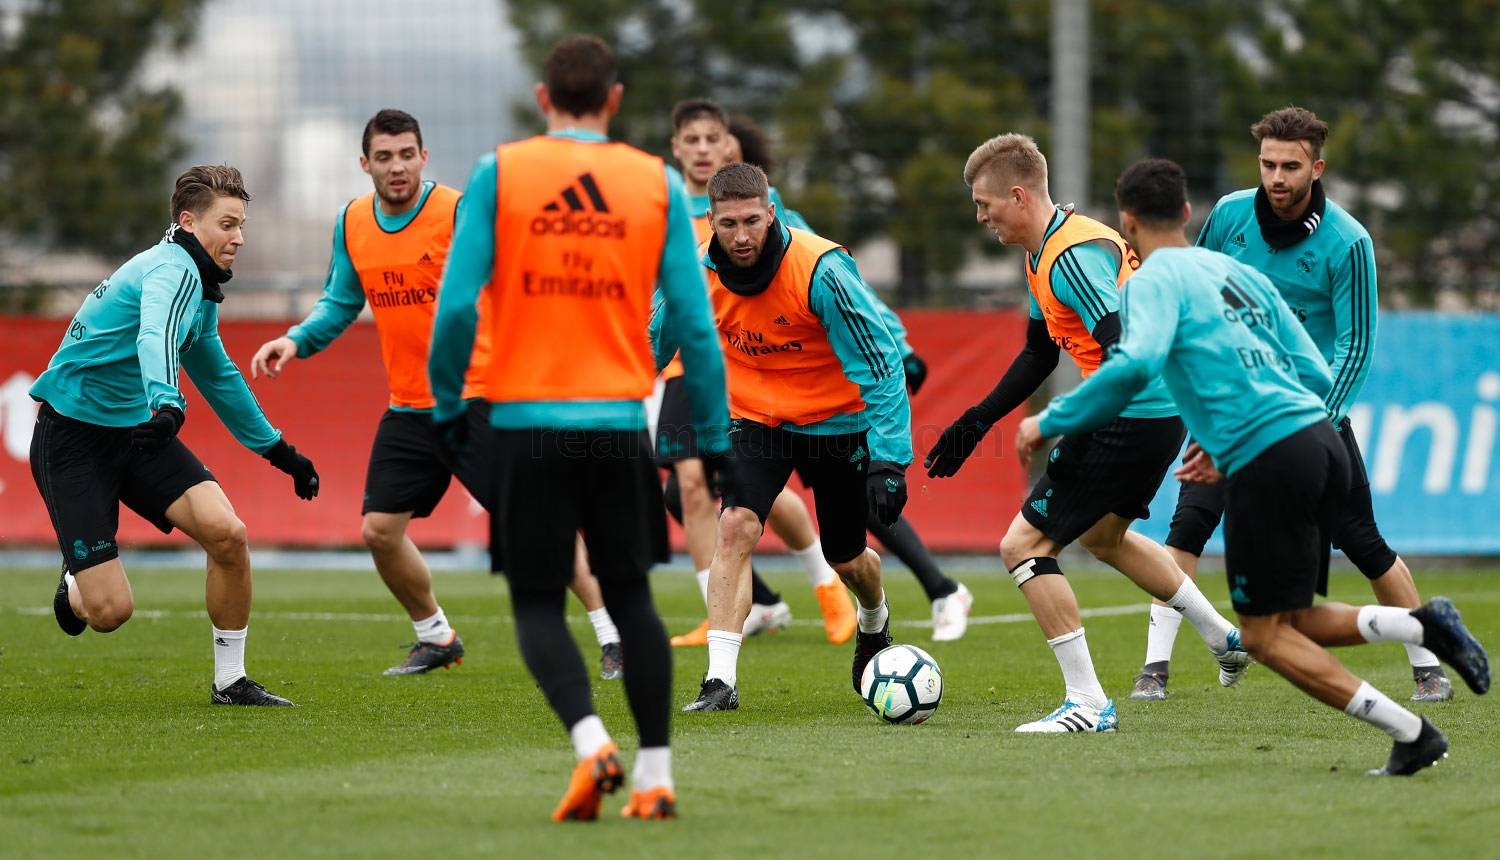 Real Madrid - Entrenamiento del Real Madrid - 14-03-2018